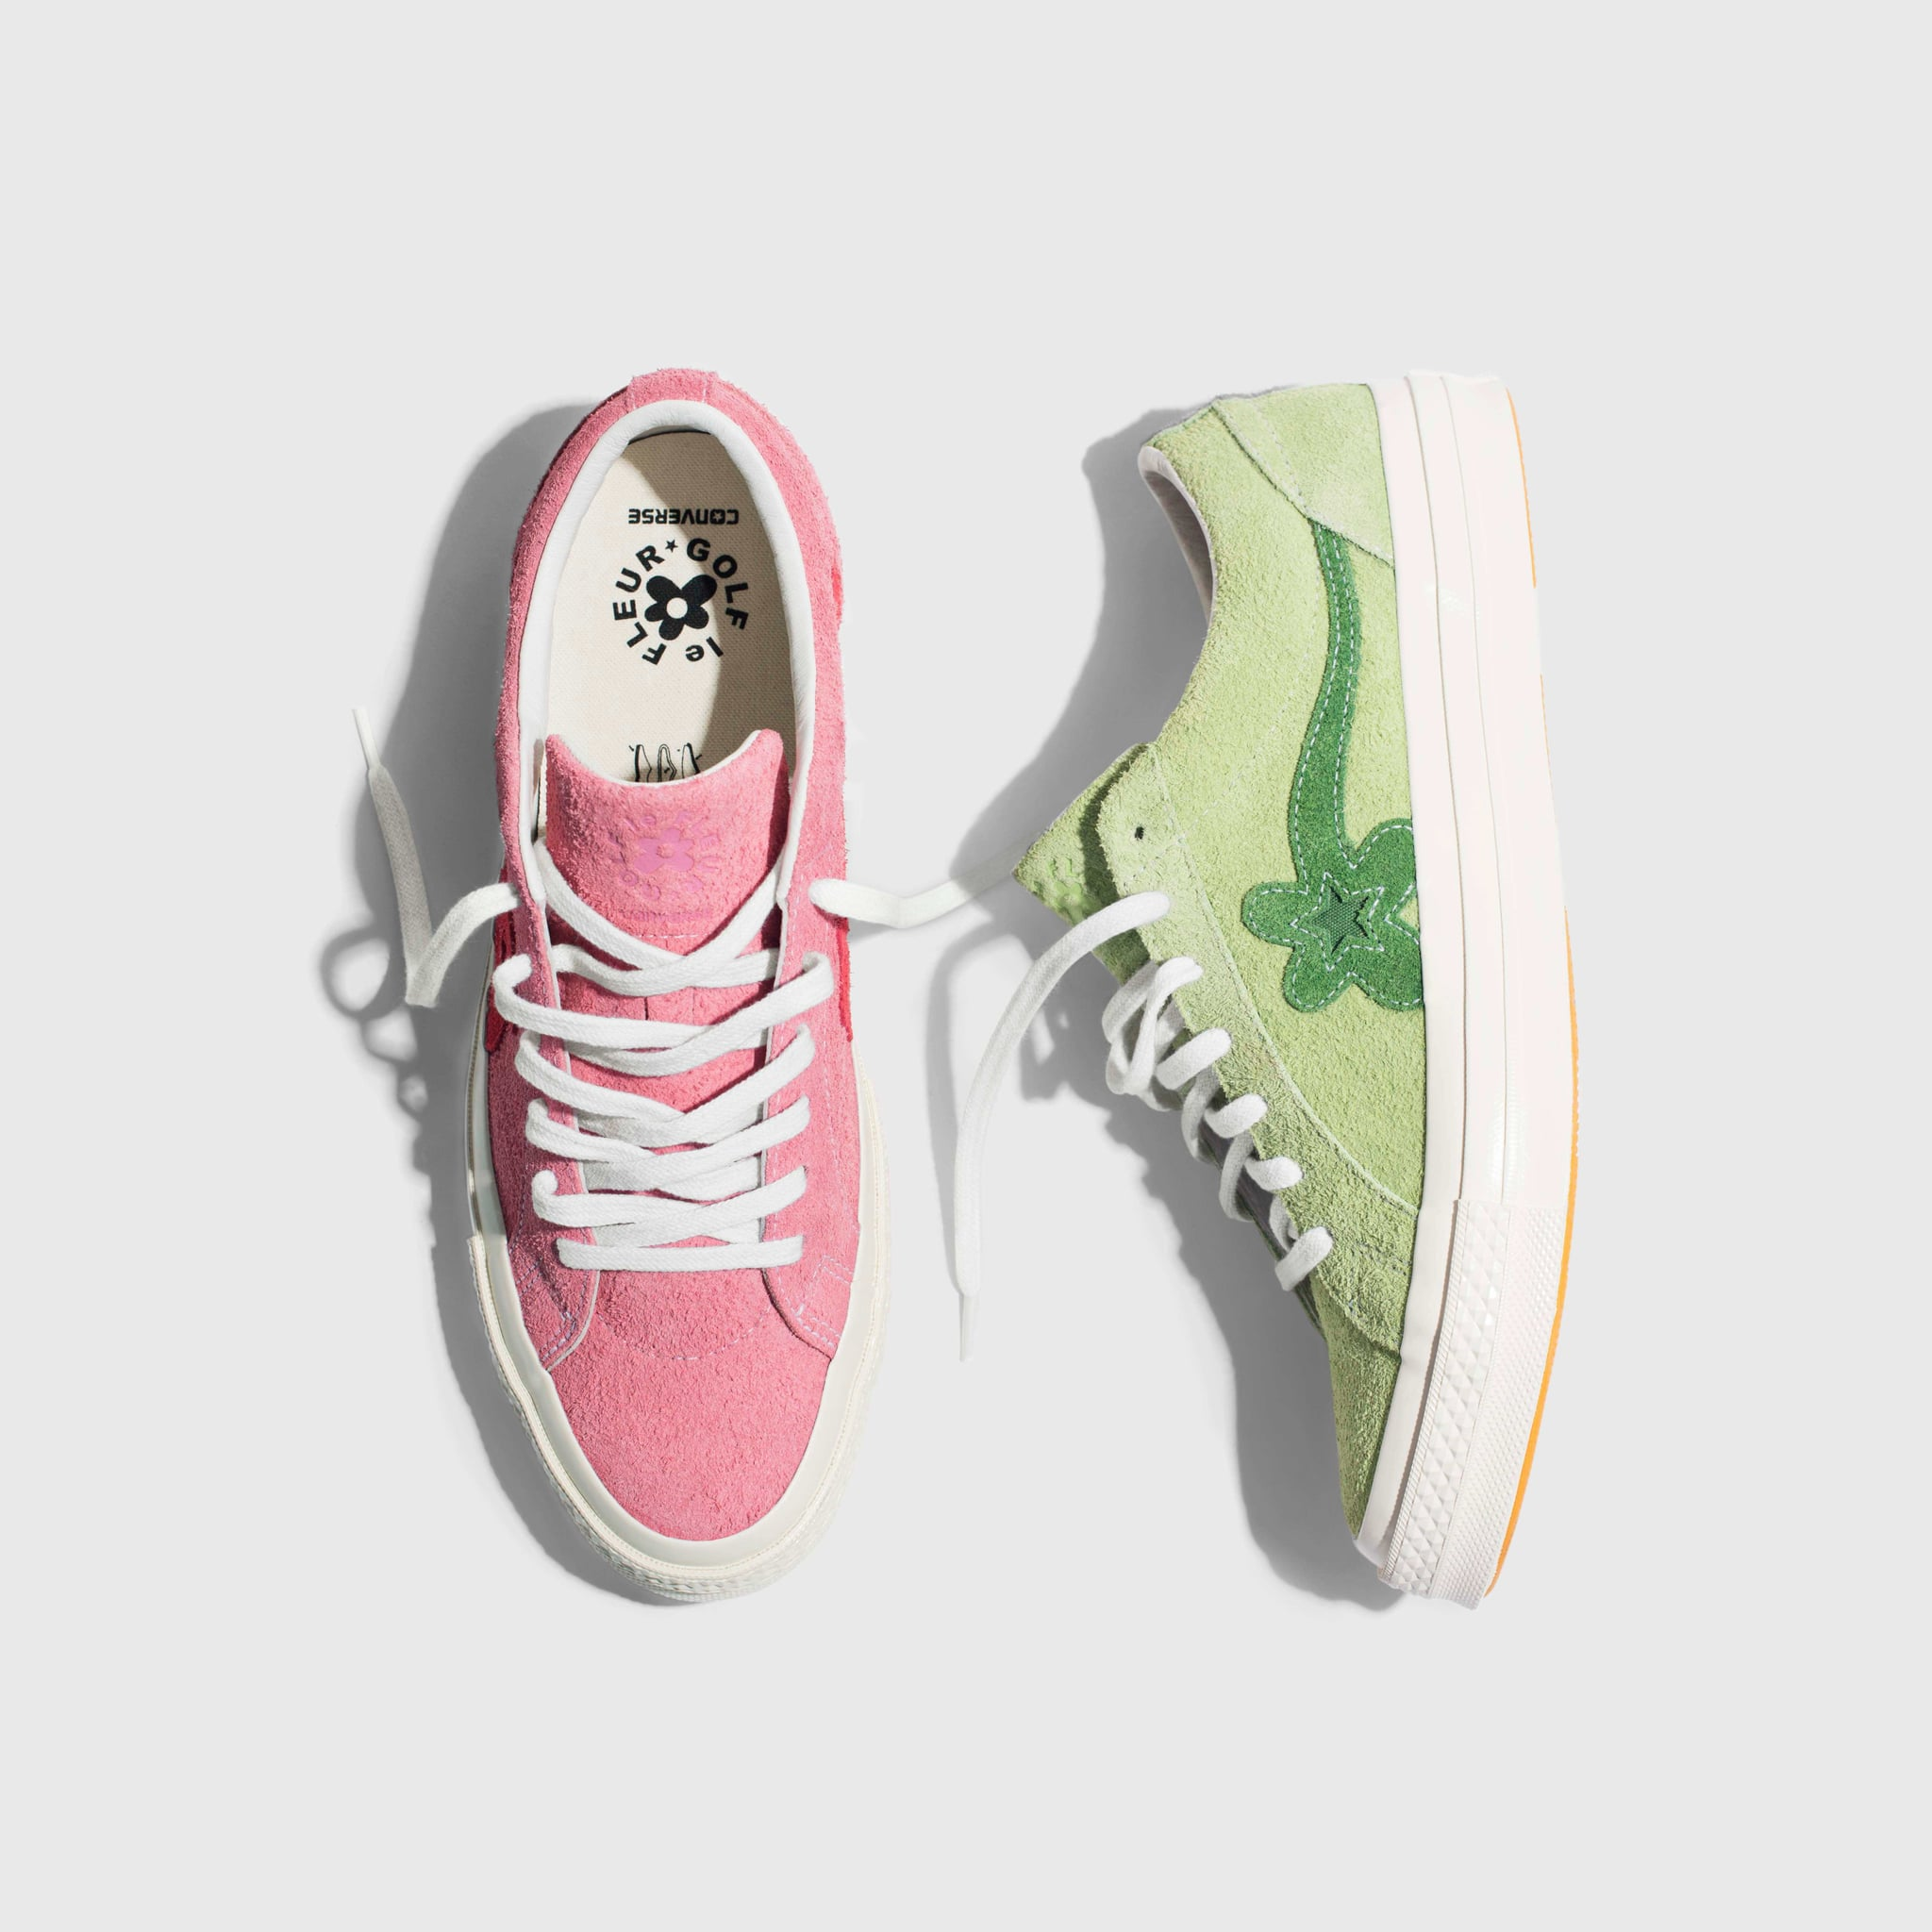 converse shoes 2k16 soundtrack spotify student account